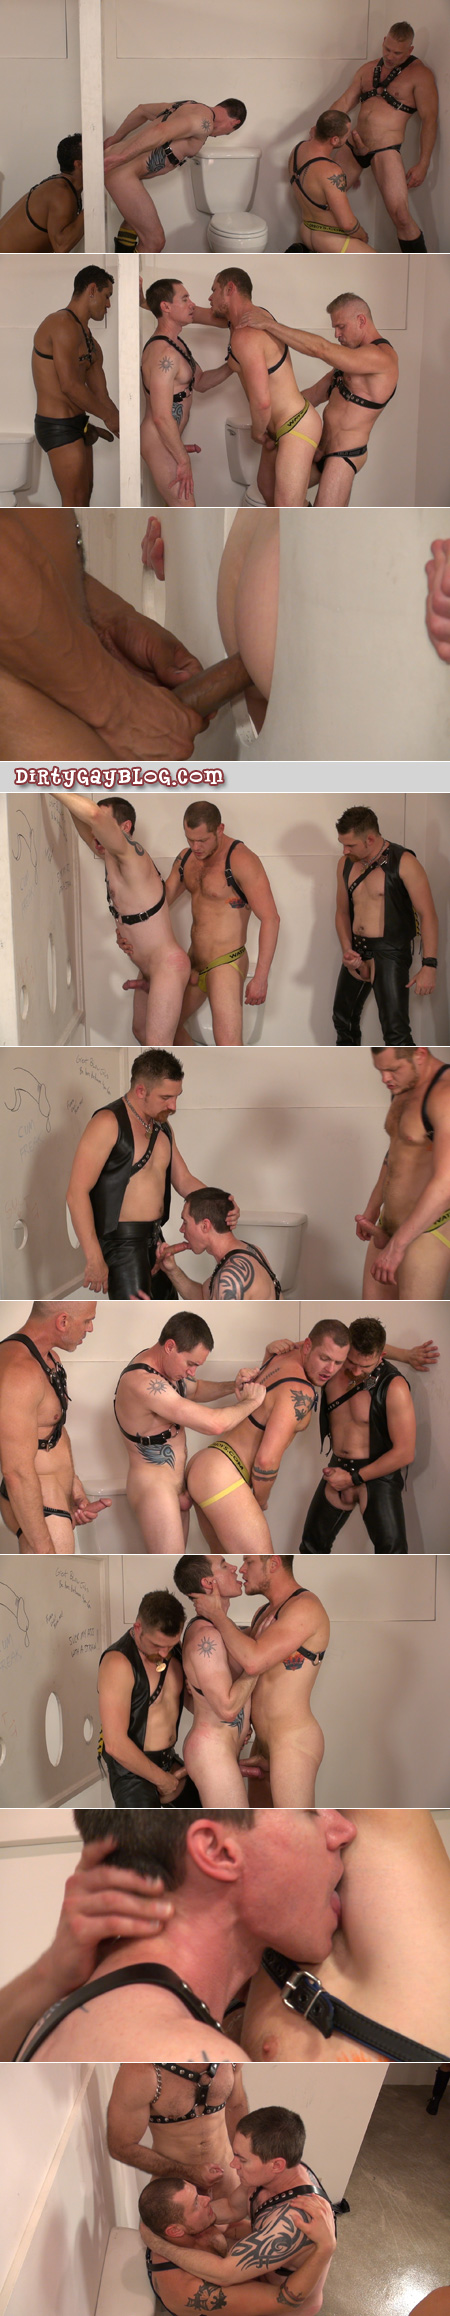 Piggy gay men having bareback group sex in a public bathroom.